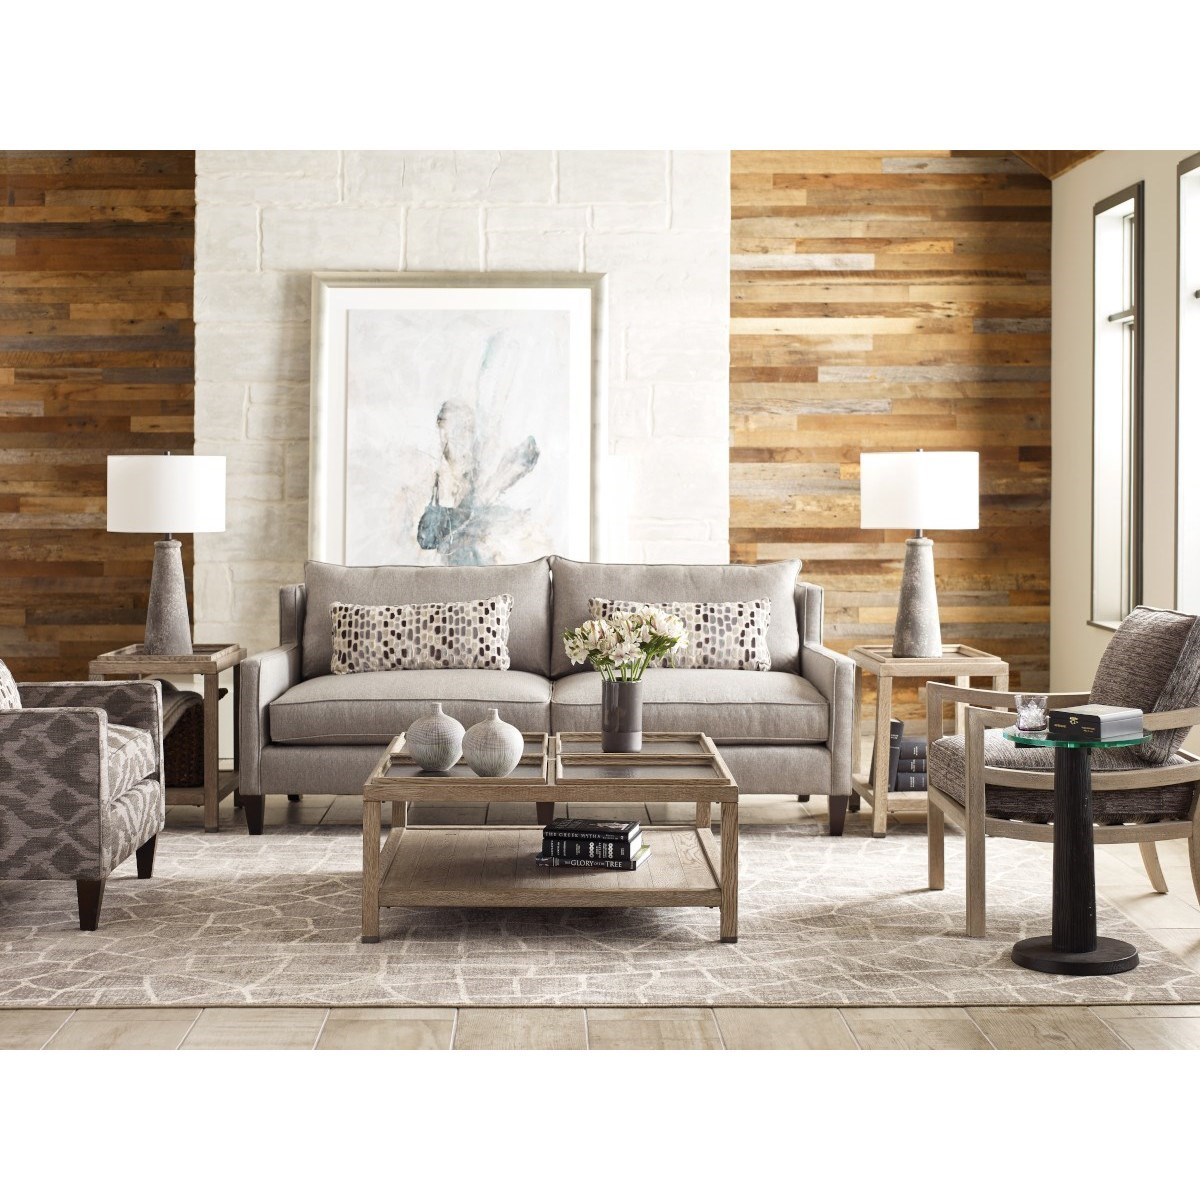 Alta Living Room Group 1 by Kincaid Furniture at Godby Home Furnishings